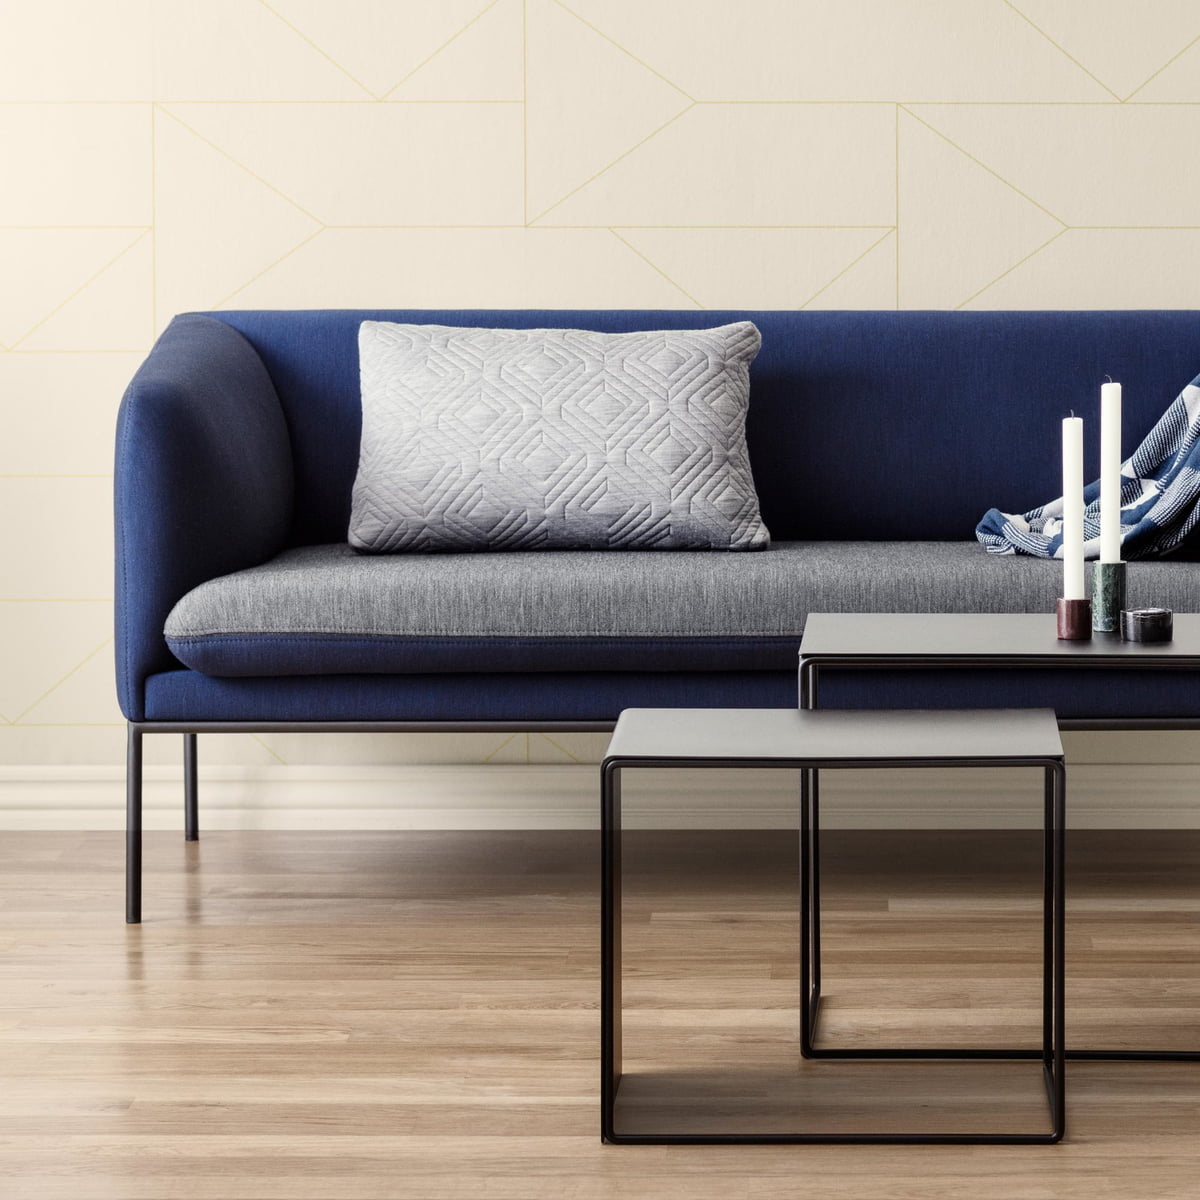 Turn Sofa (2 Seater) by ferm Living | Connox